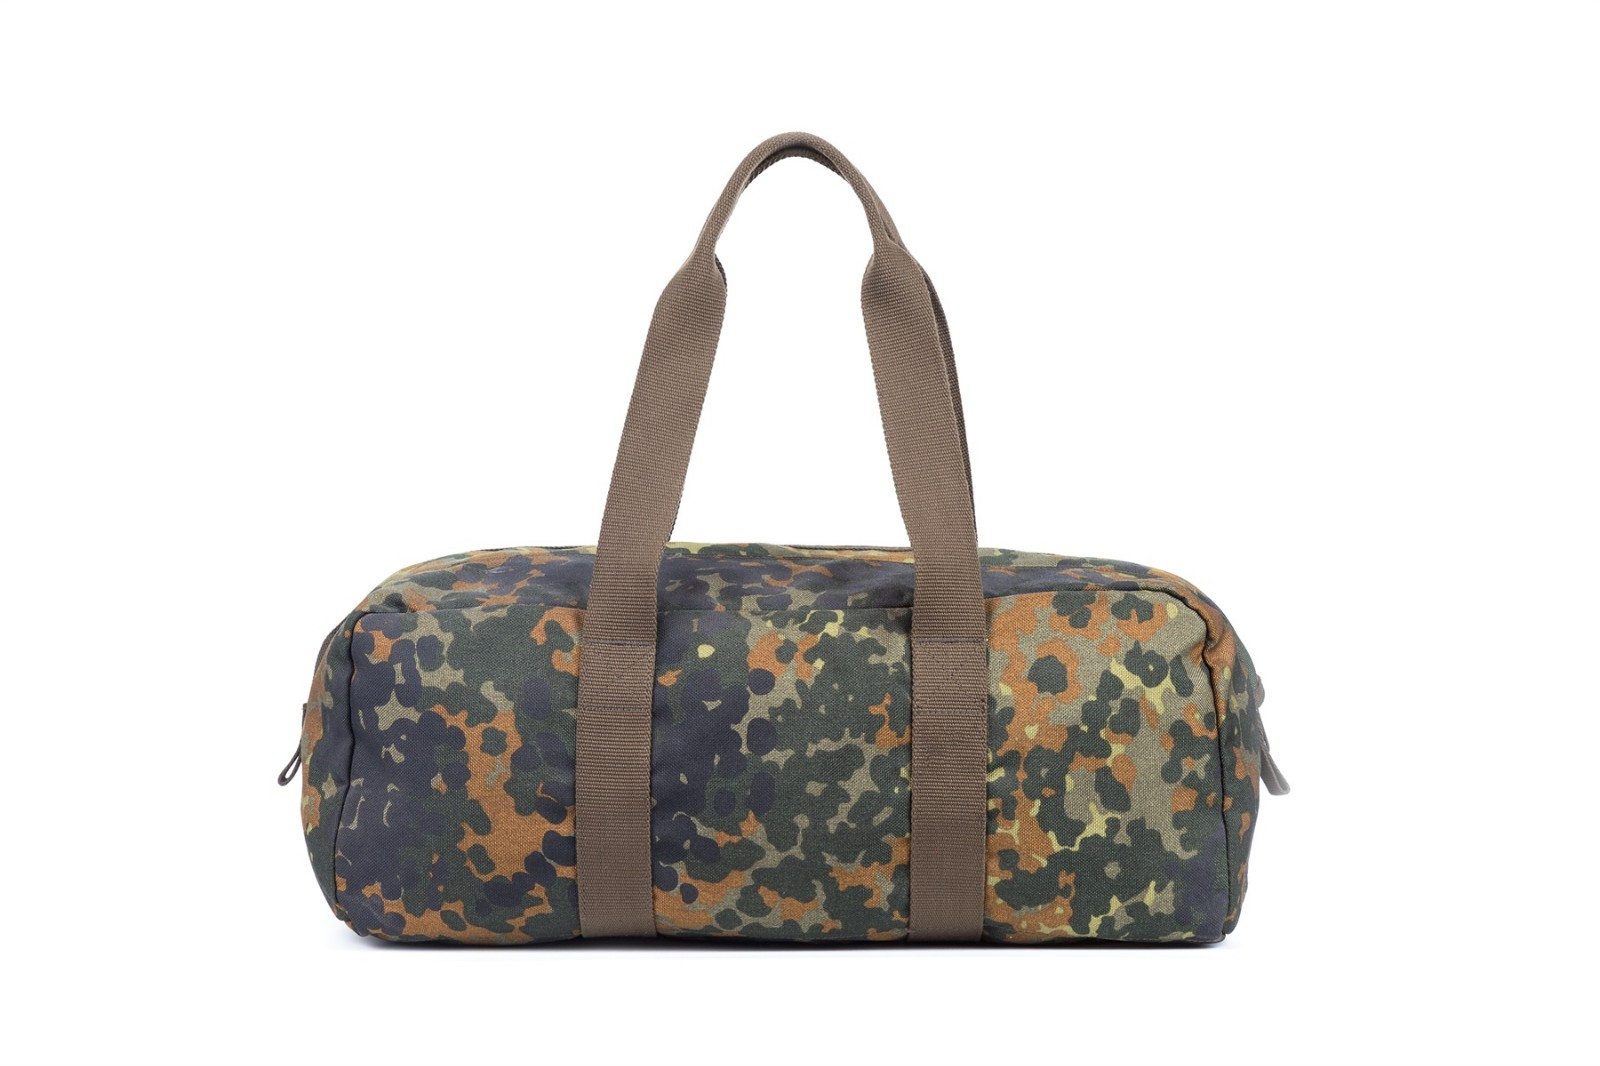 GF bags-Manufacturer Of Military Gear Bags, Military Tactical Bag On GF Bags-4